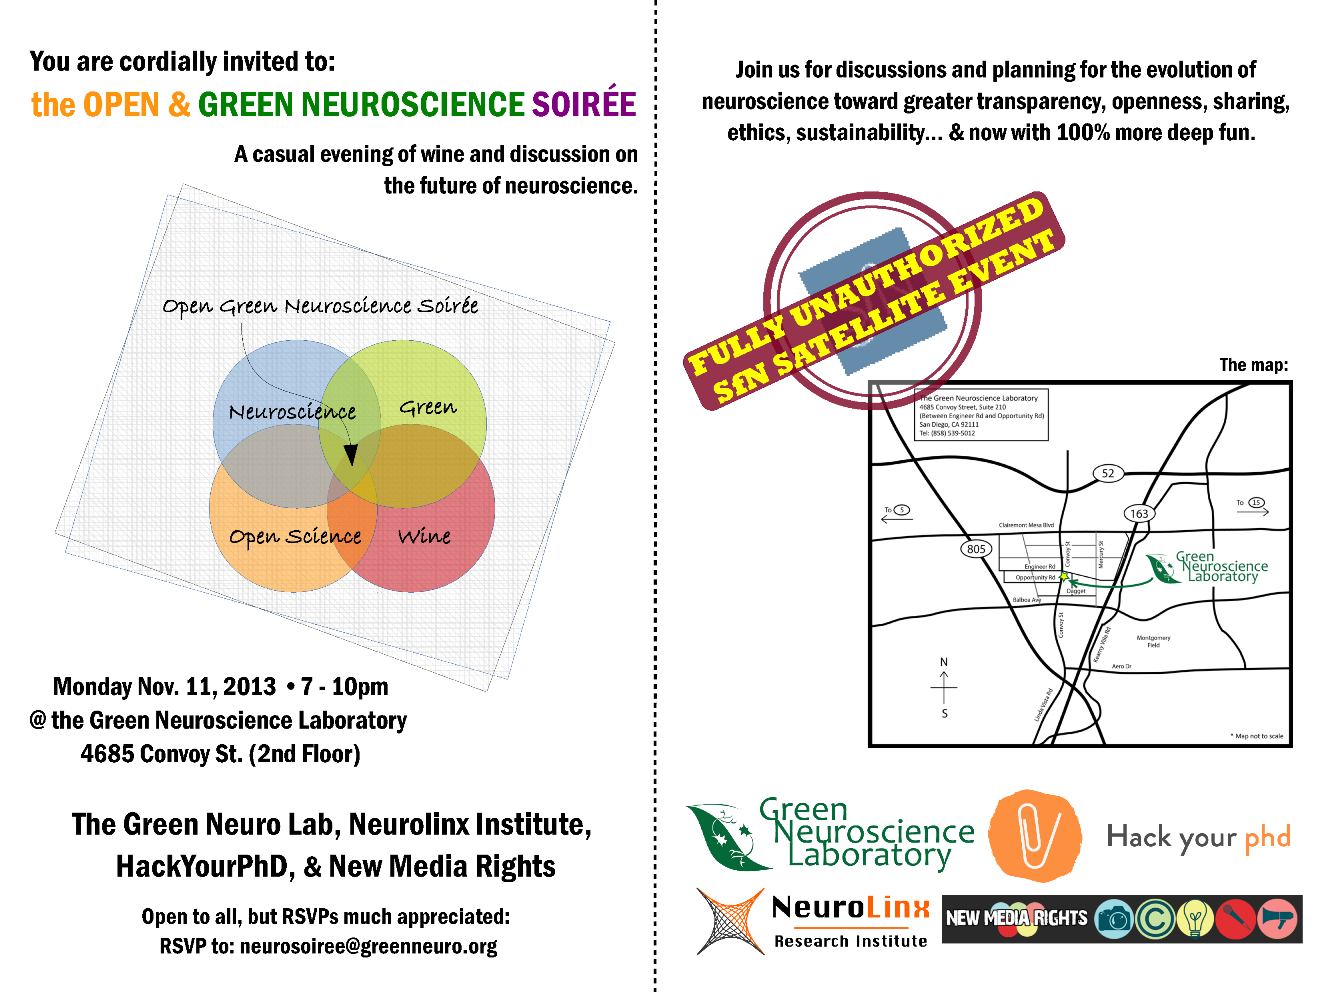 Open_Green_Neuro_Soiree_SfN_2013_11_Nov06b